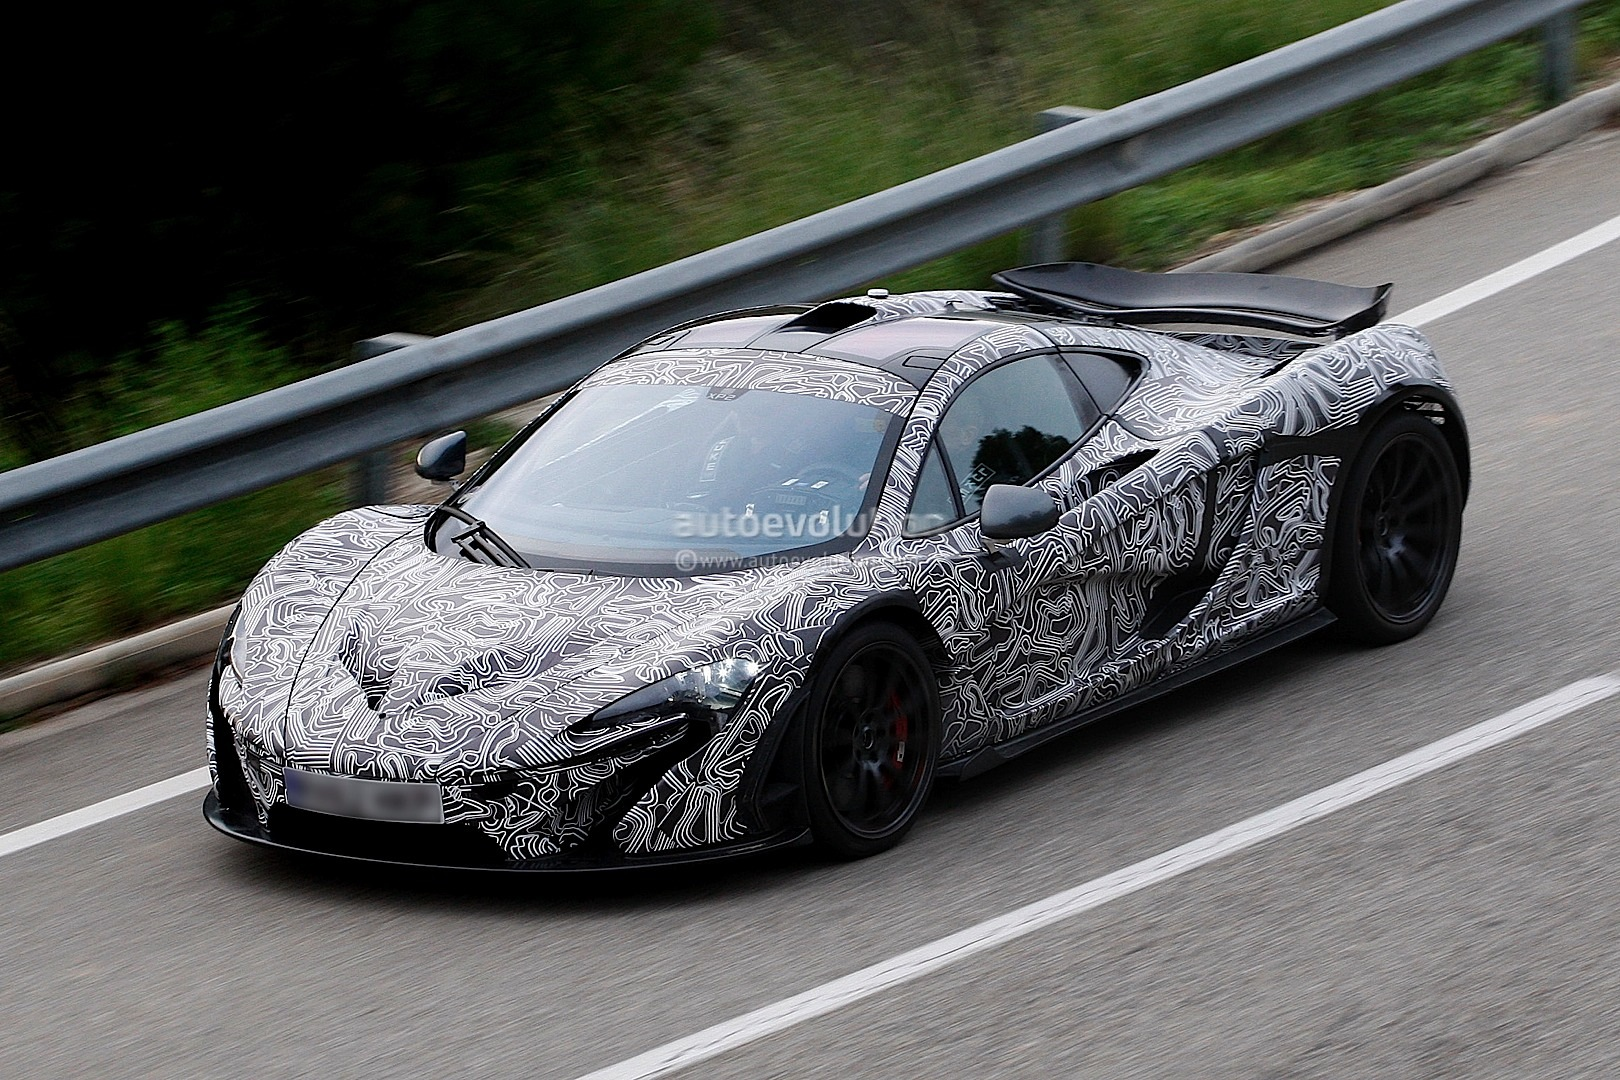 McLaren P1 Hypercar Spyshots spotted testing again Wallpapers HD Wallpaper